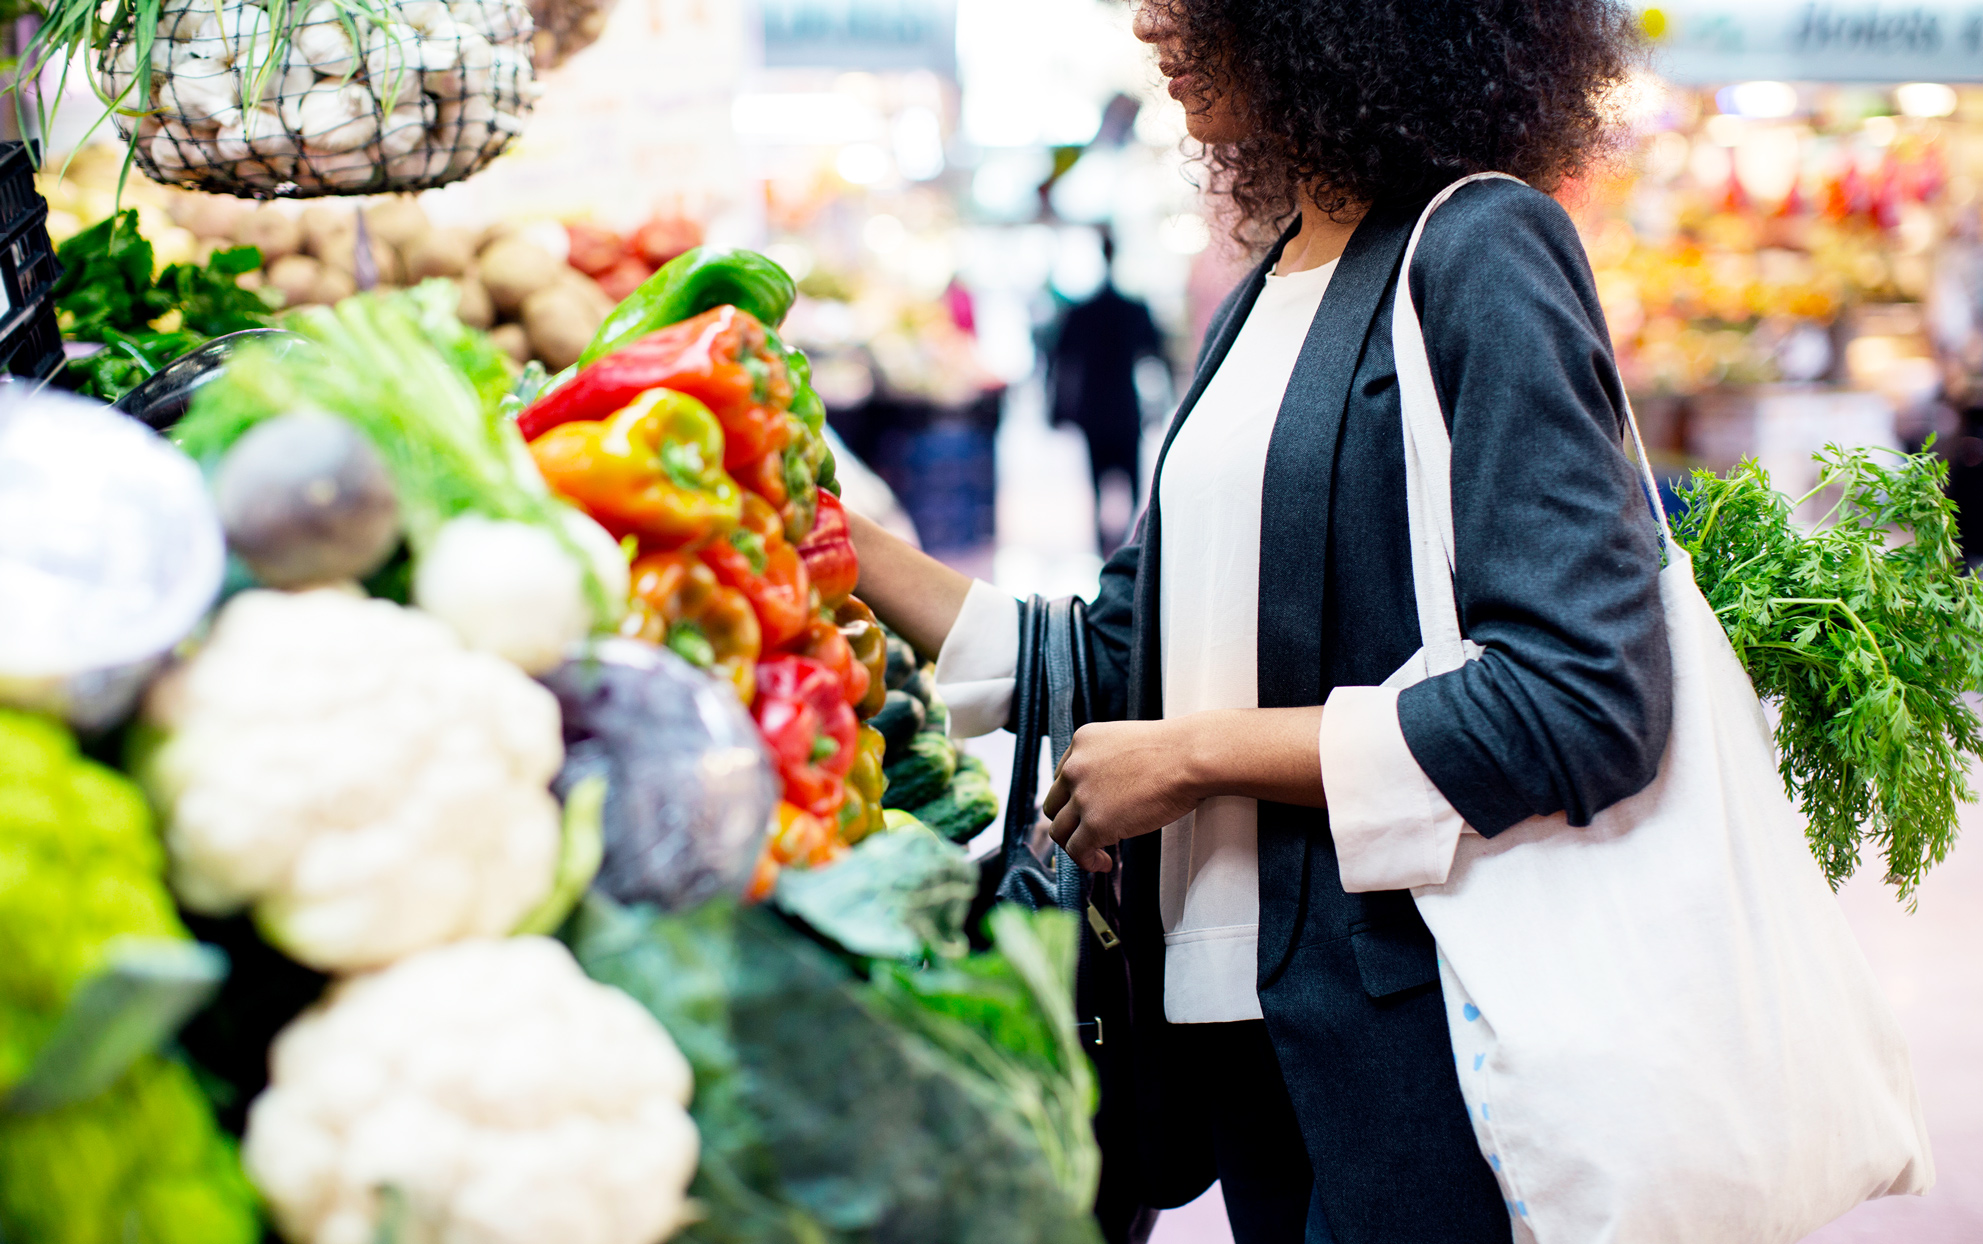 Woman shopping in a grocery store for fresh produce